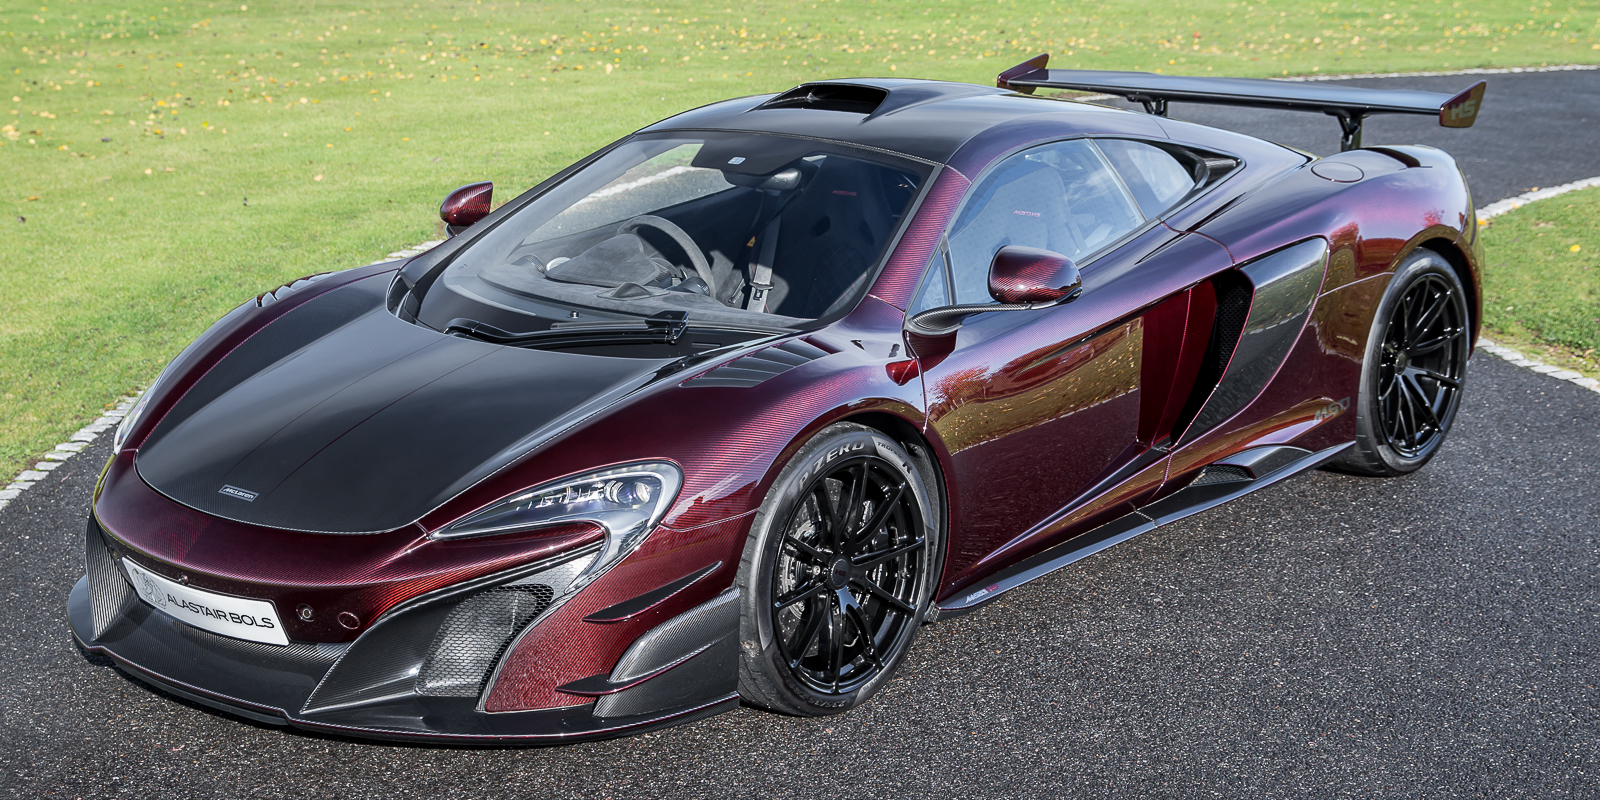 McLaren MSO HS 688 – VISUAL CARBON CANDY RED